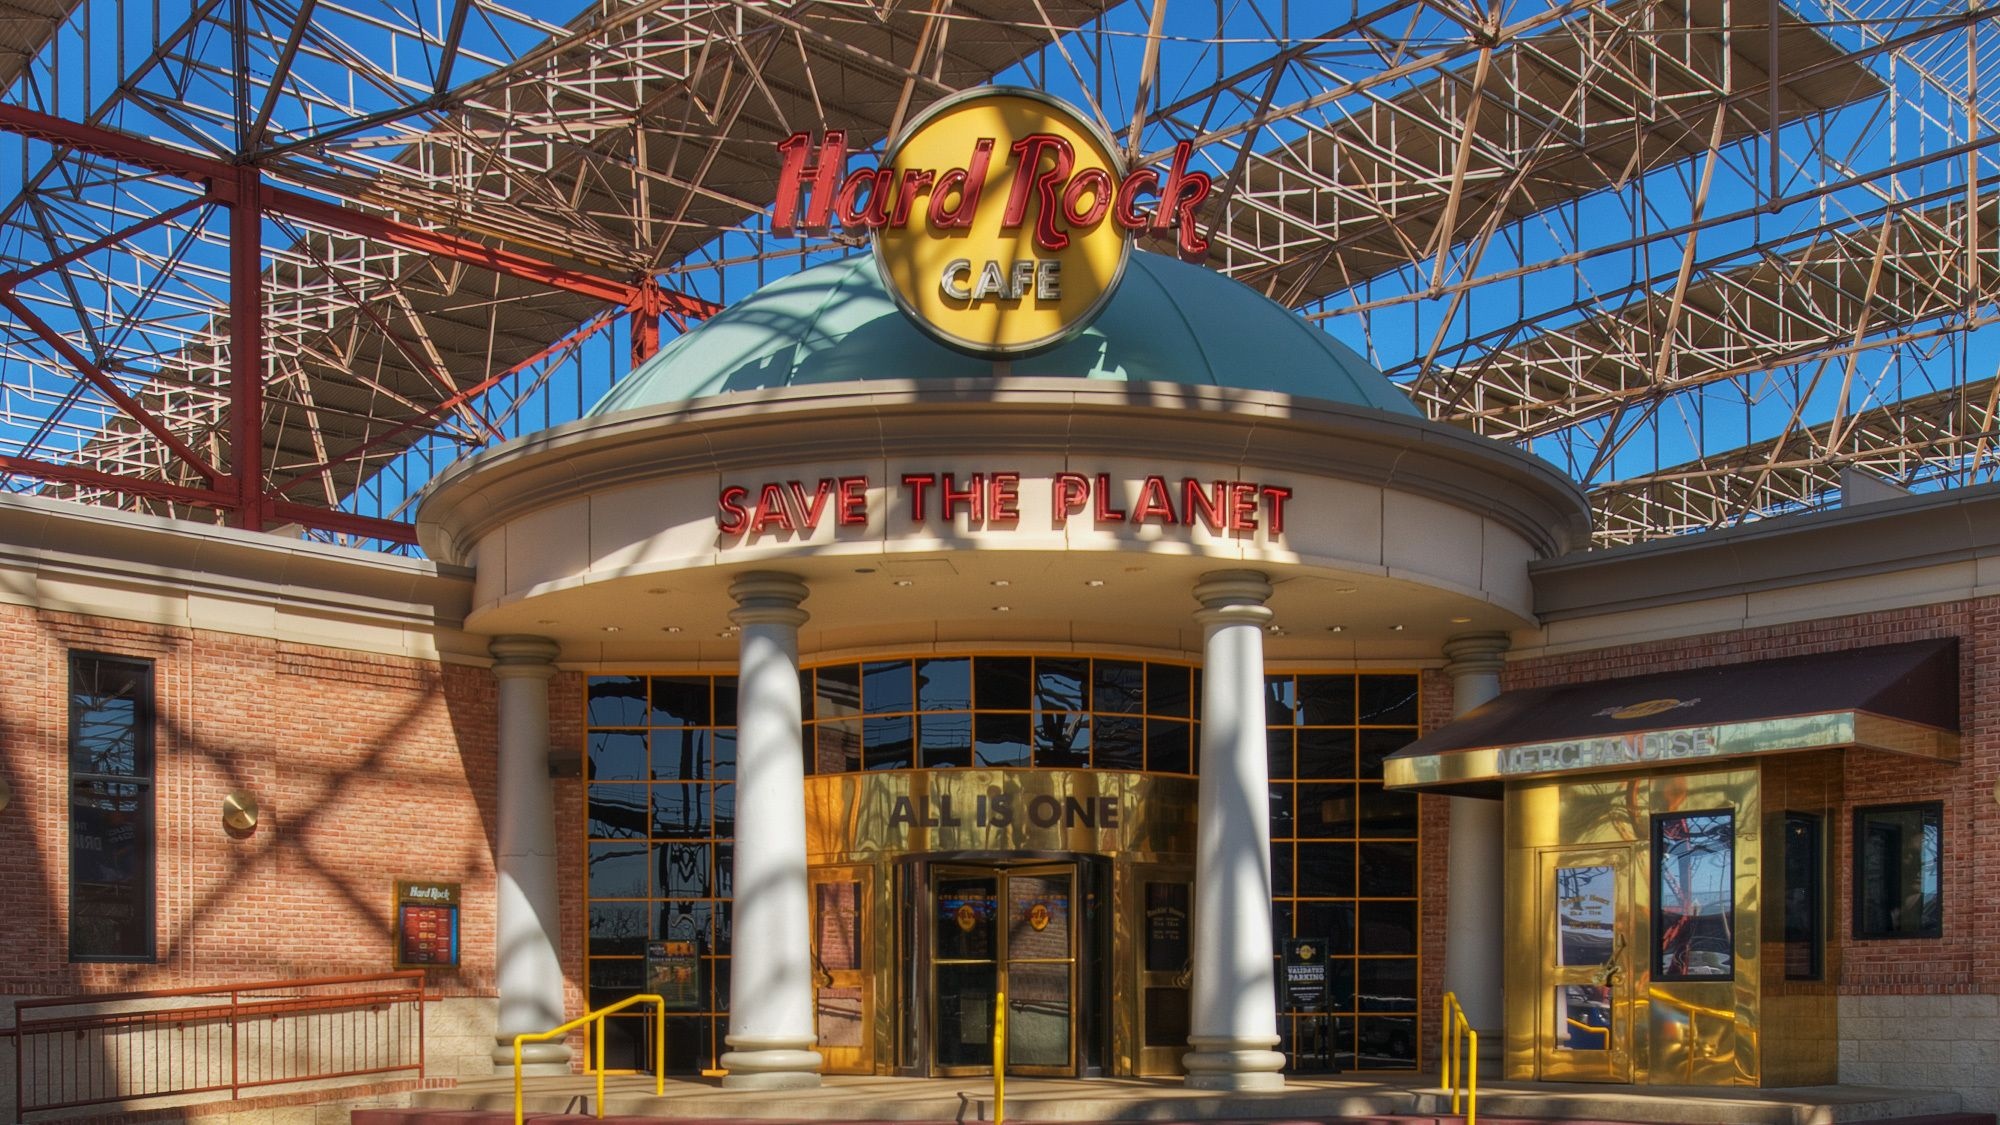 Entrance to the St Louis Hard Rock Cafe